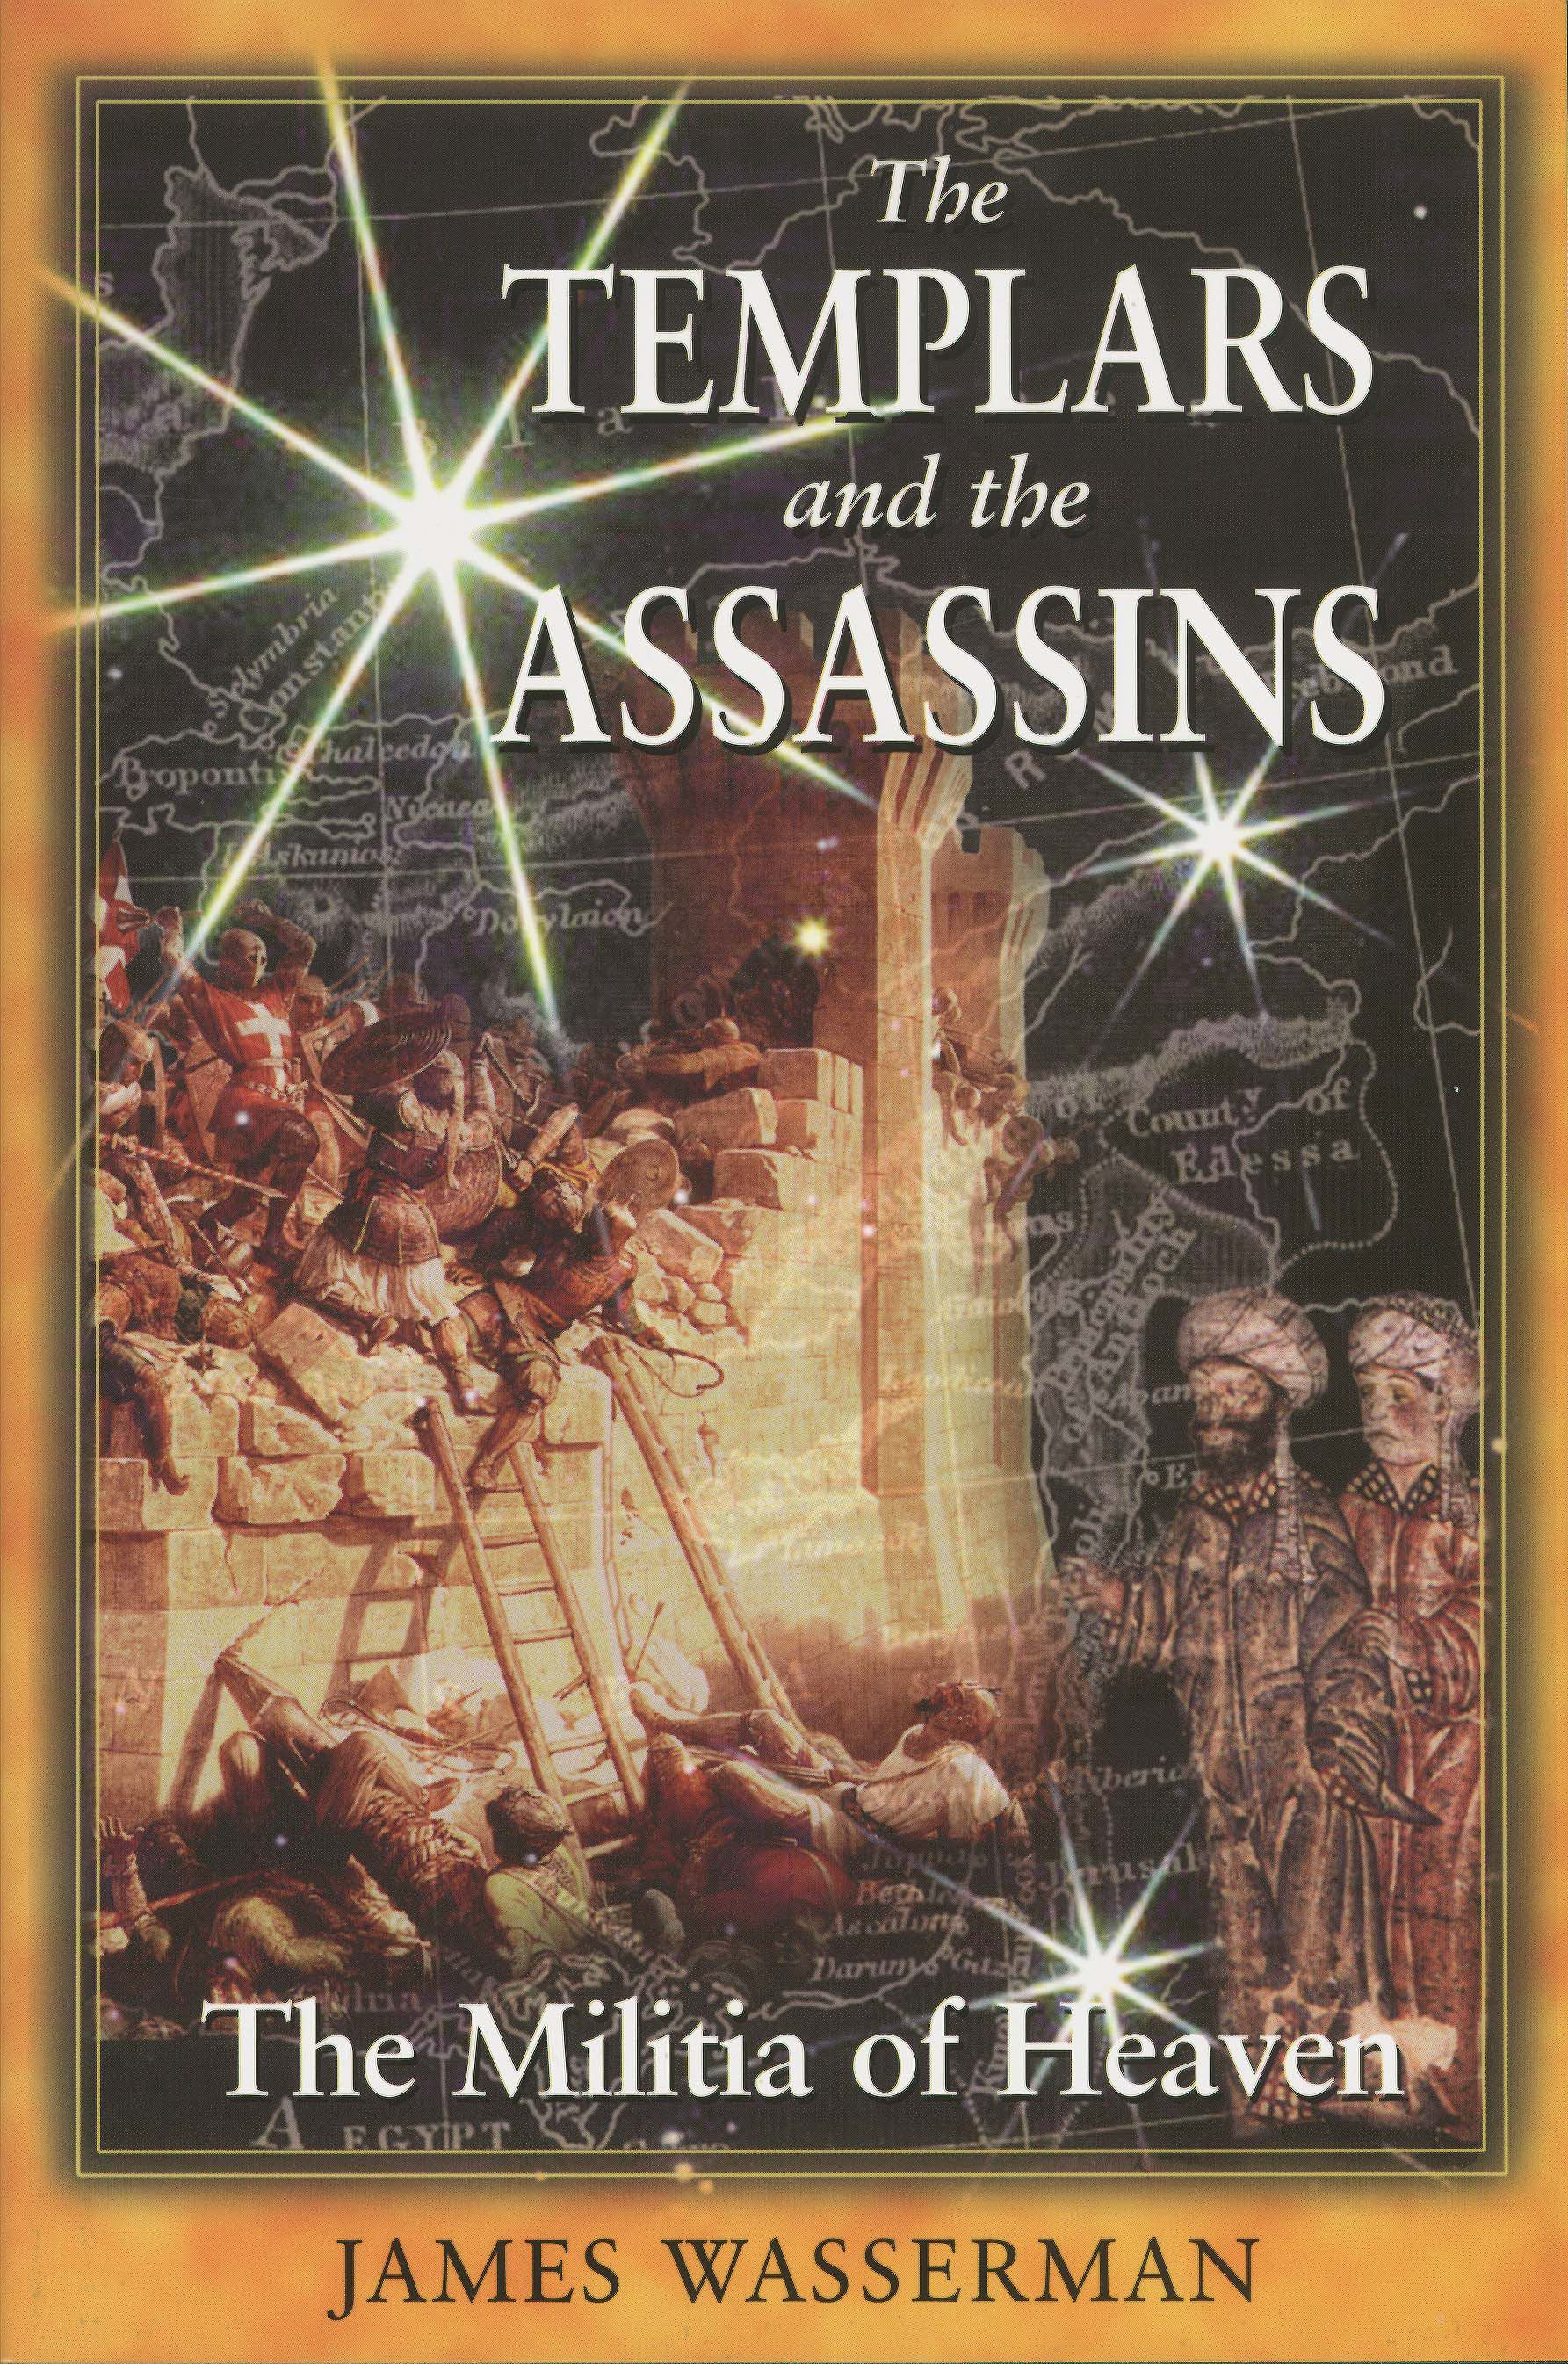 The Templars and the Assassins | Book by James Wasserman